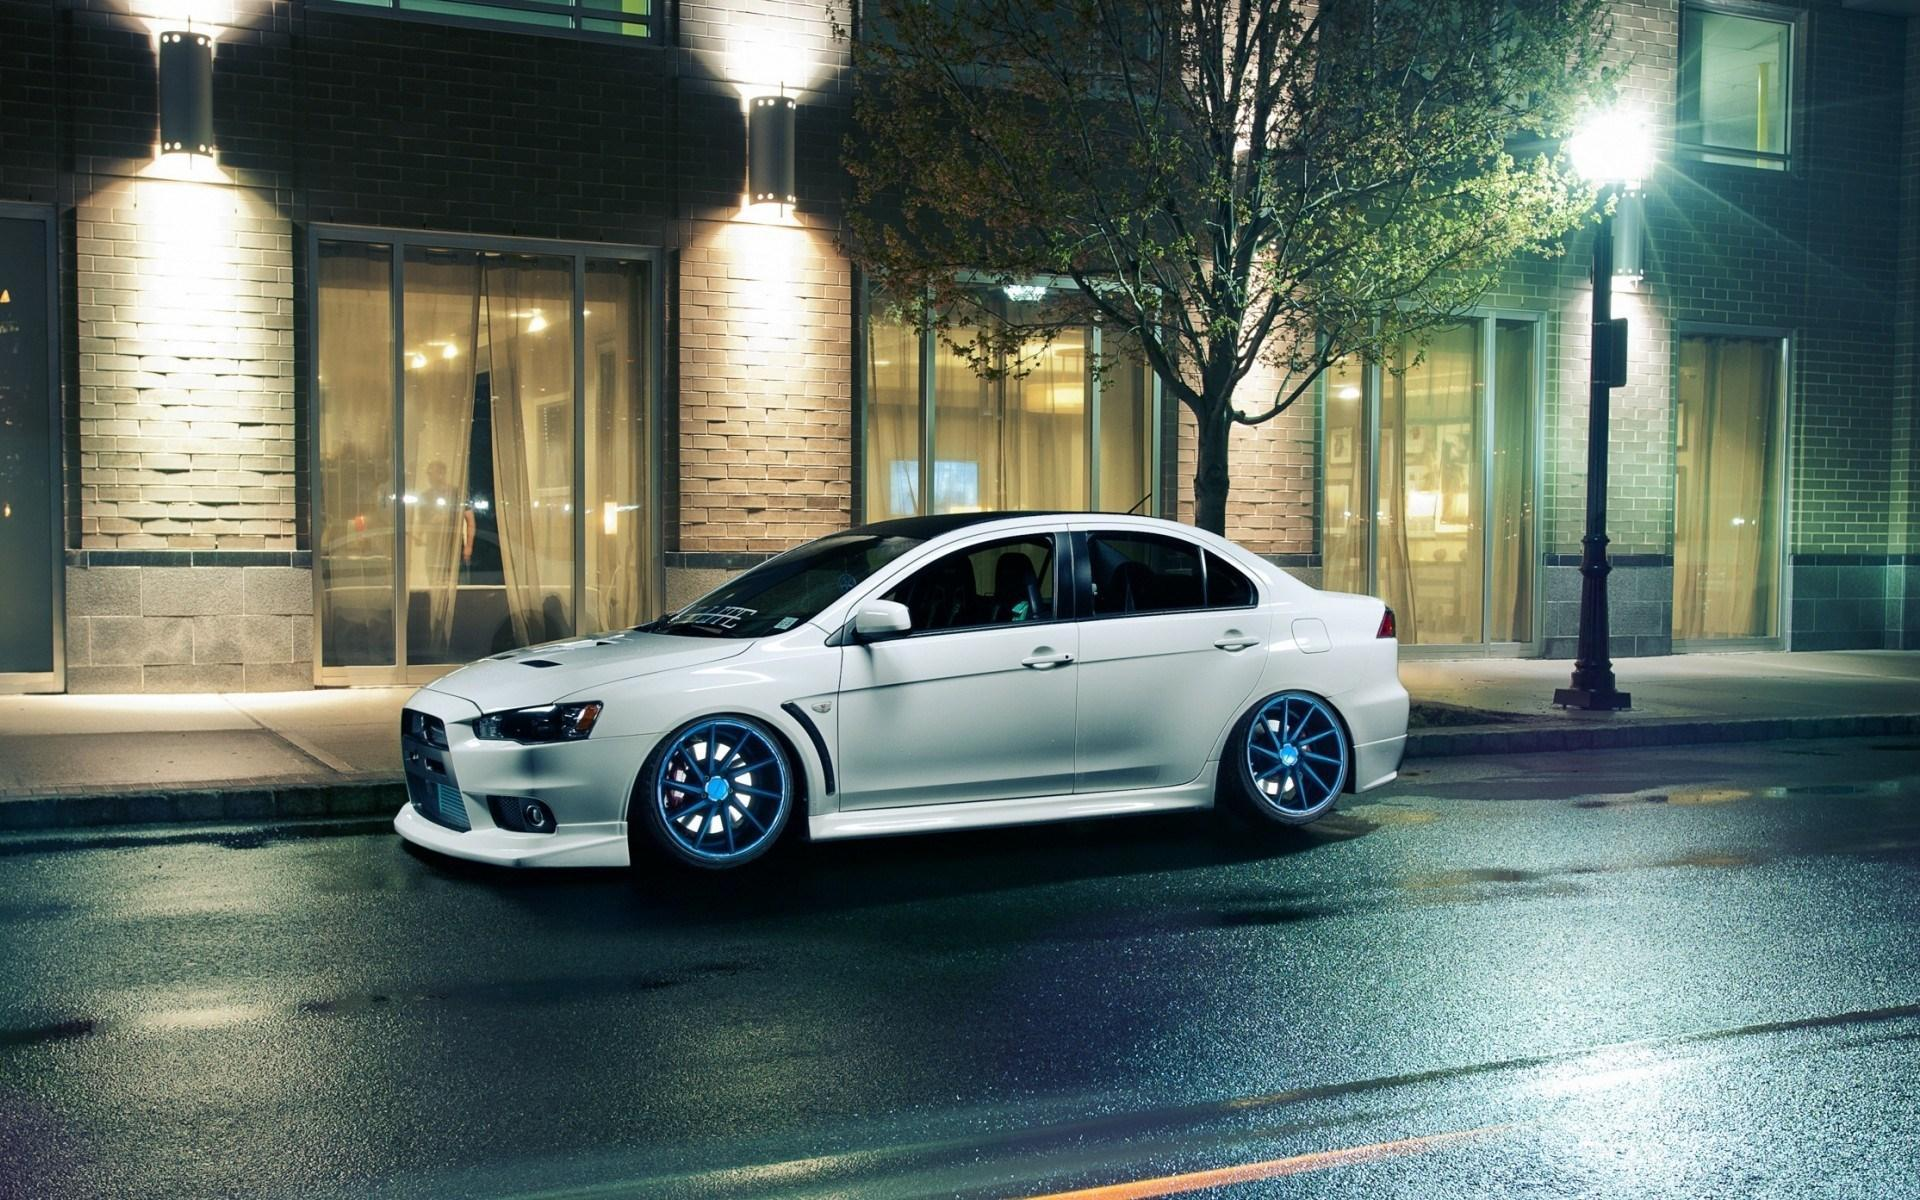 mitsubishi-lancer-evolution-x-city-parking